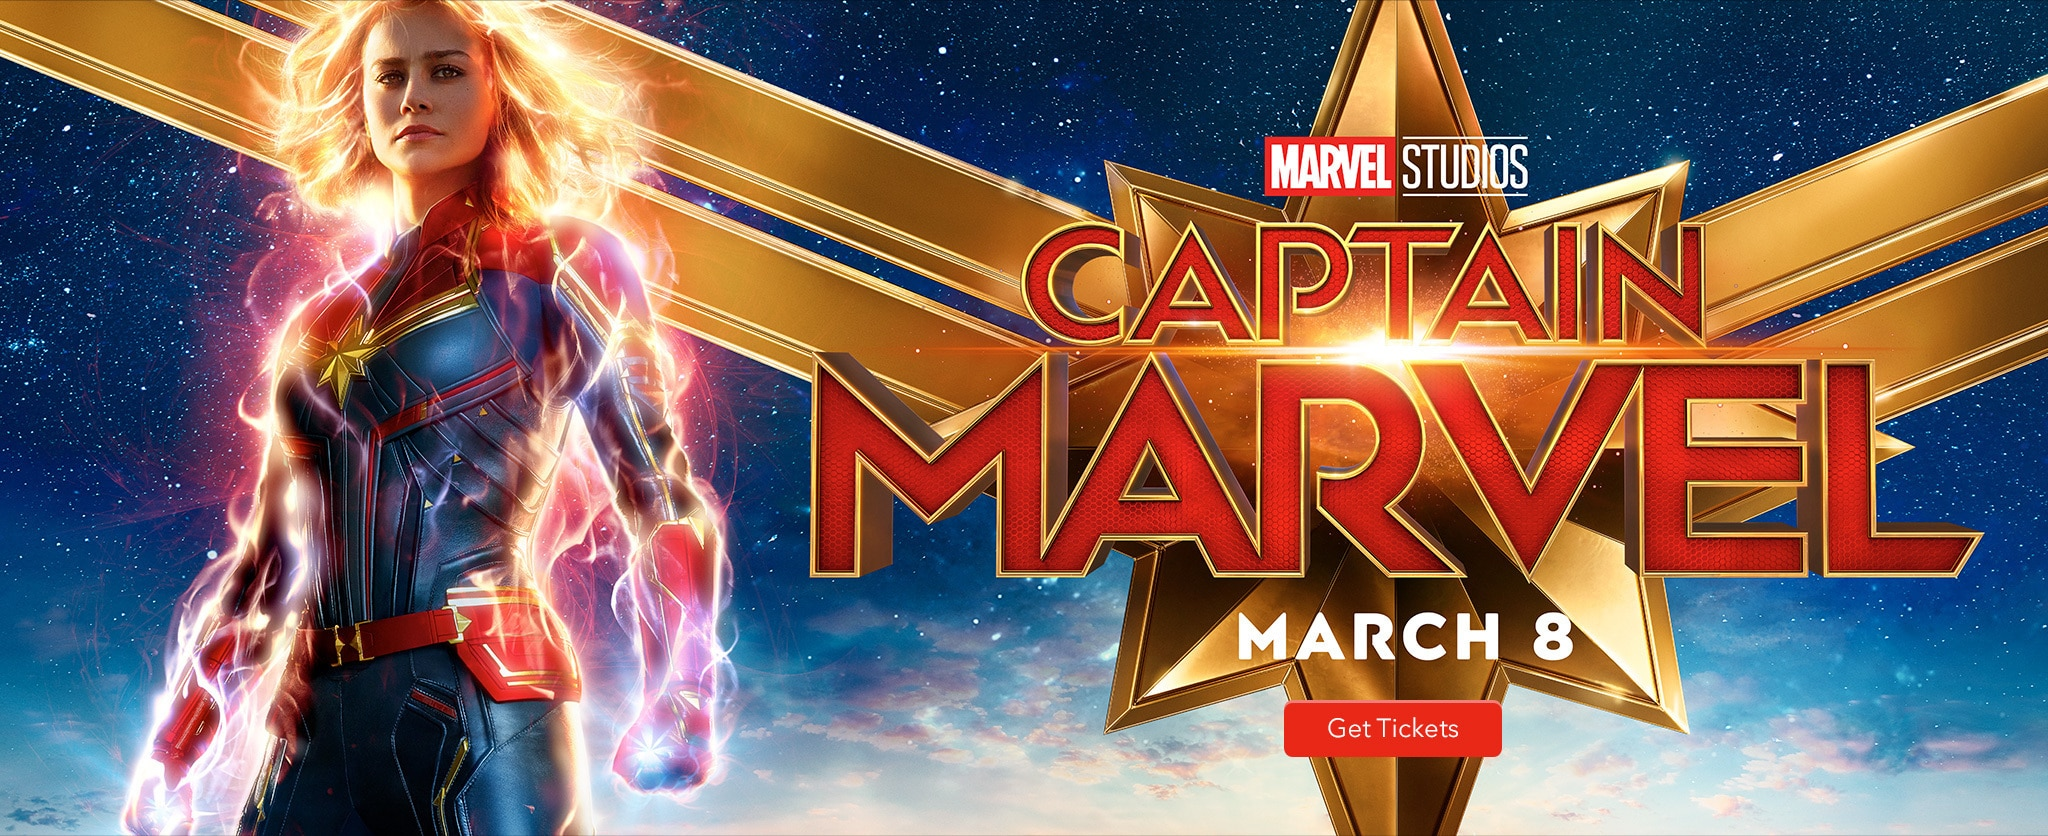 Captain Marvel Release Date